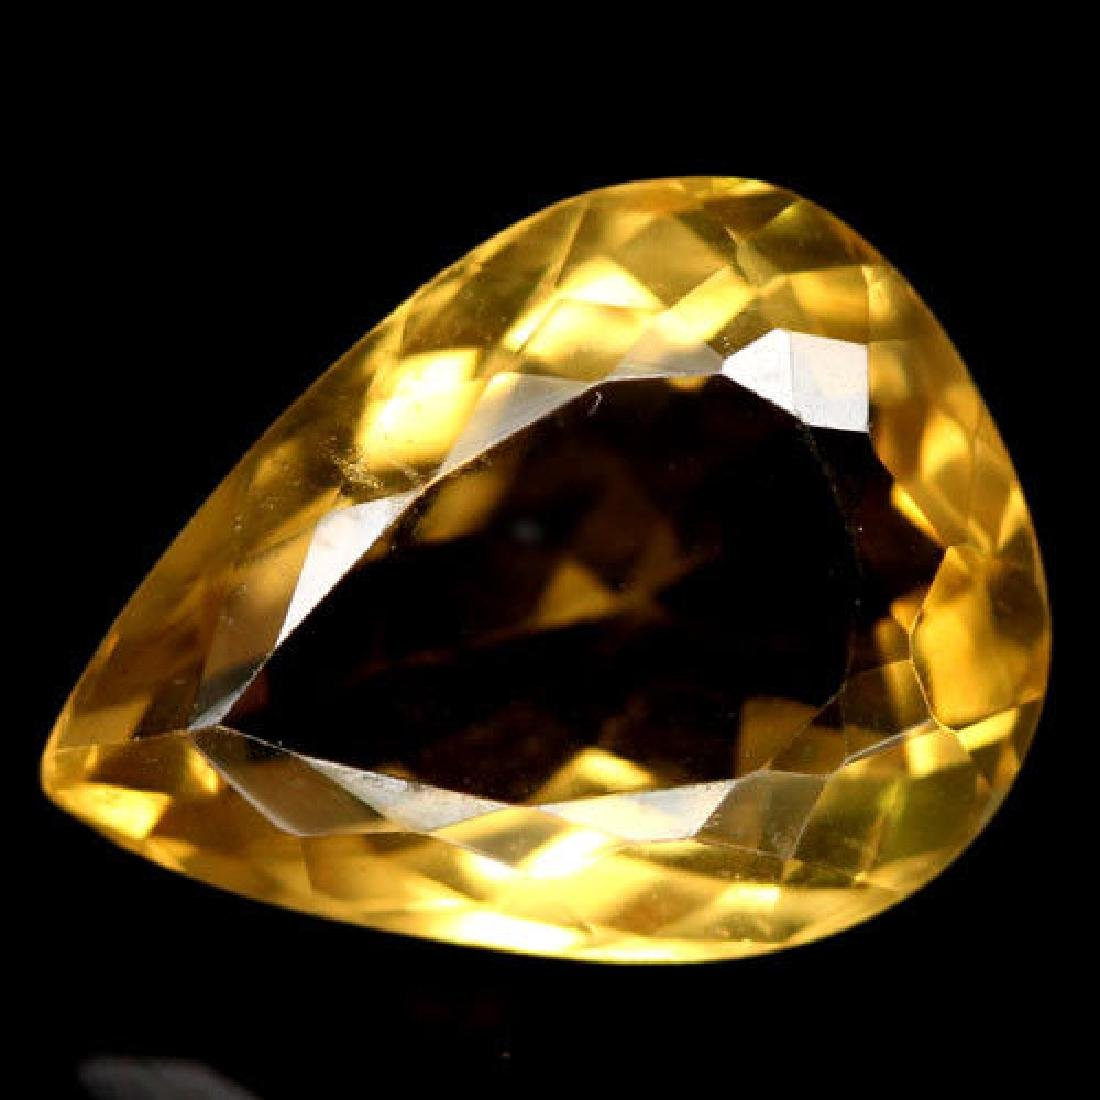 8.47 CT AAA! NATURAL! 12 X 16 mm. WHISKY YELLOW AFRICAN